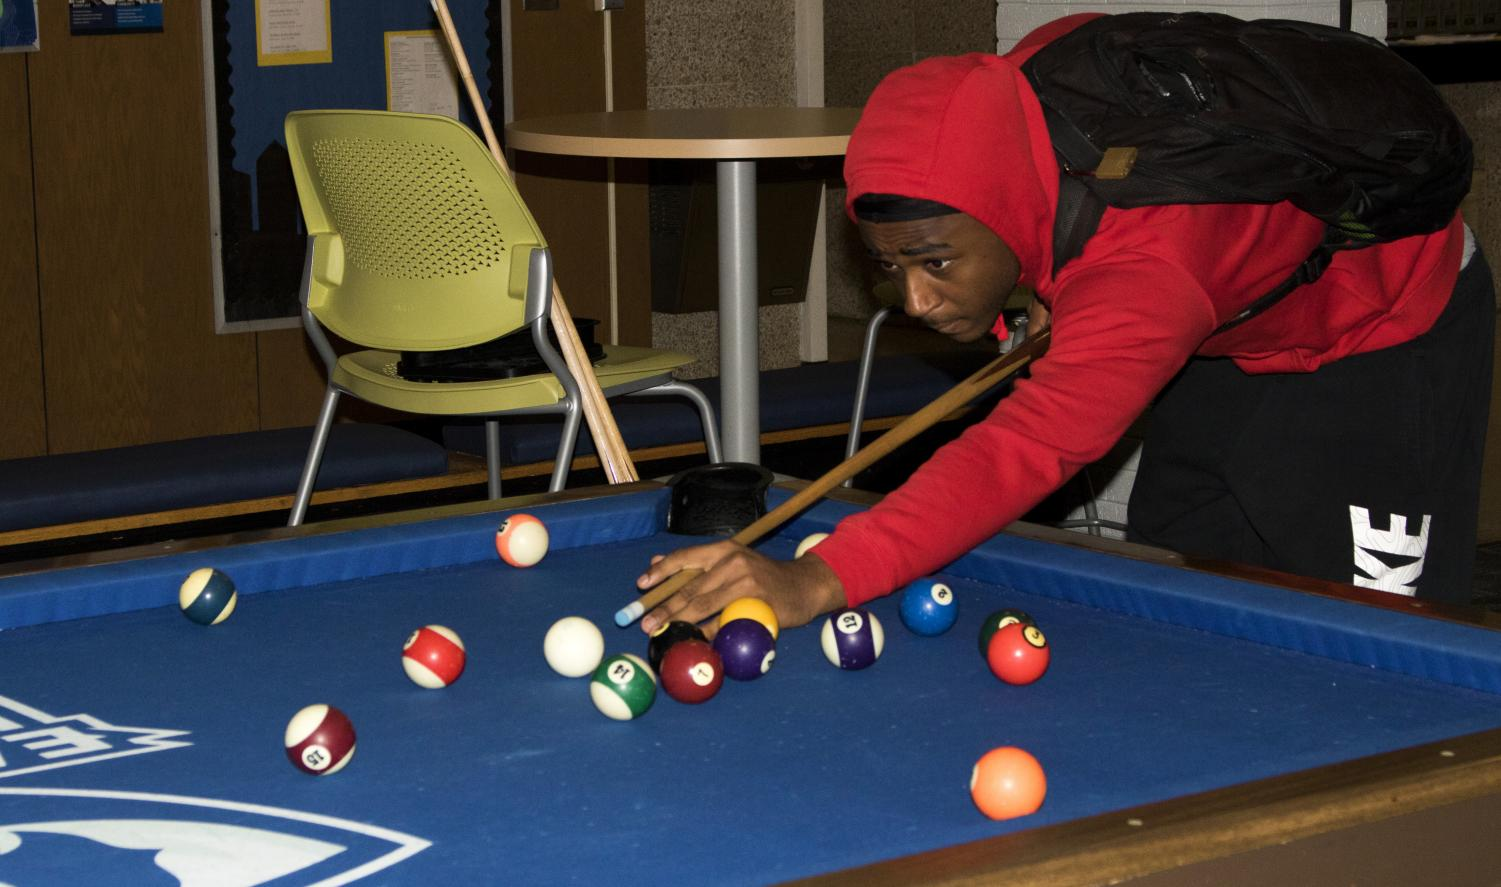 Jordan Parks, a freshman pre-med major, plays pool at the Pizza, Pool and Police event in Taylor Hall Tuesday night.